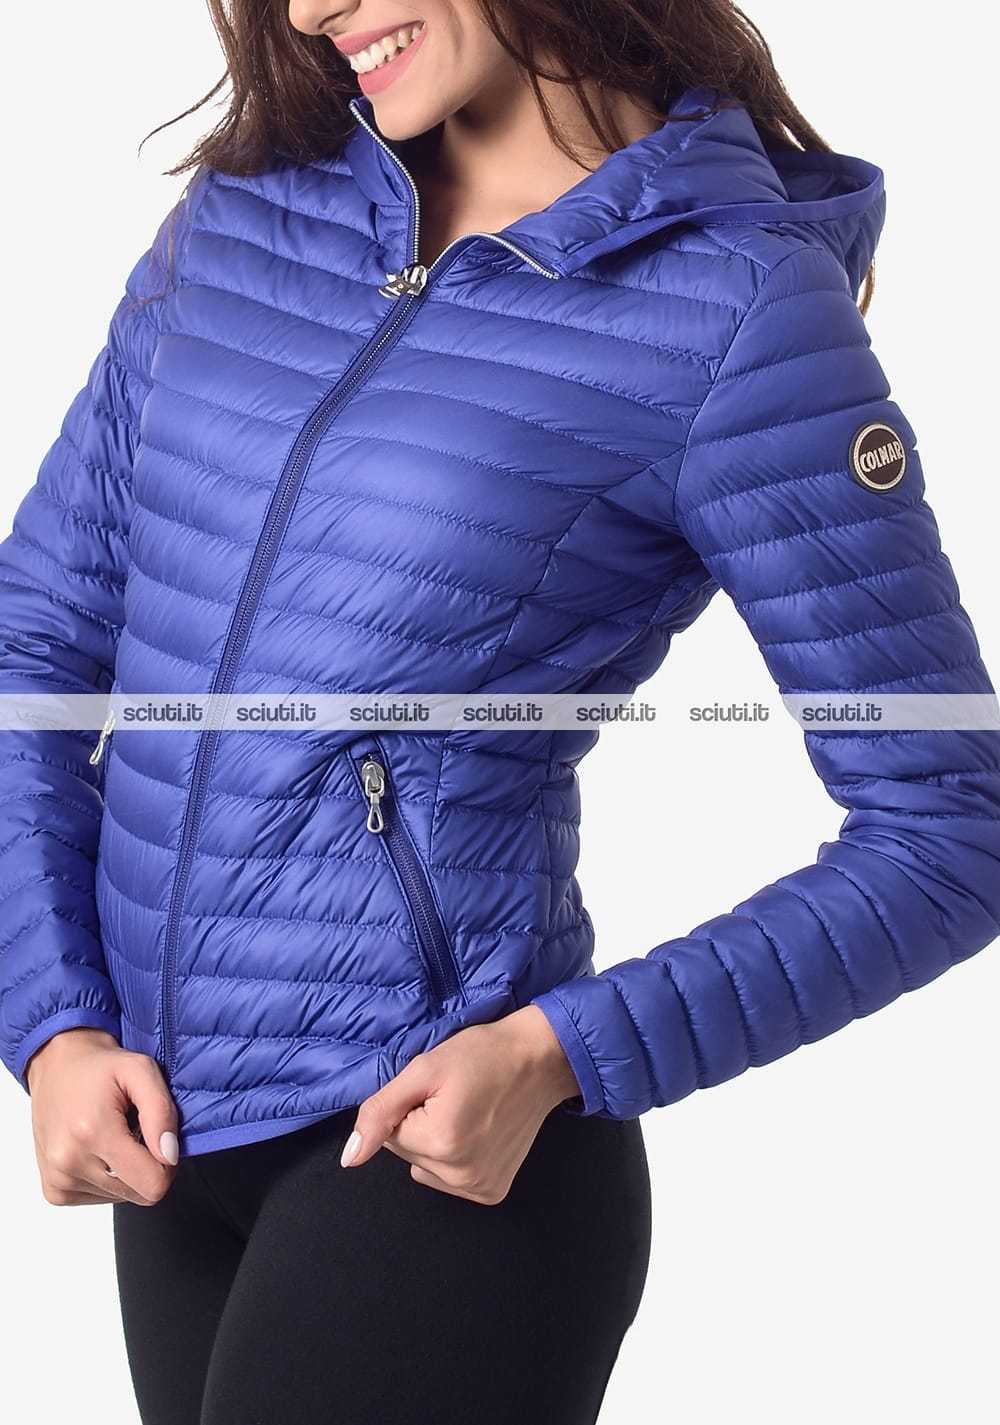 on sale 7ba96 8dad3 Piumino Colmar donna leggero con cappuccio azzurro | Sciuti.it